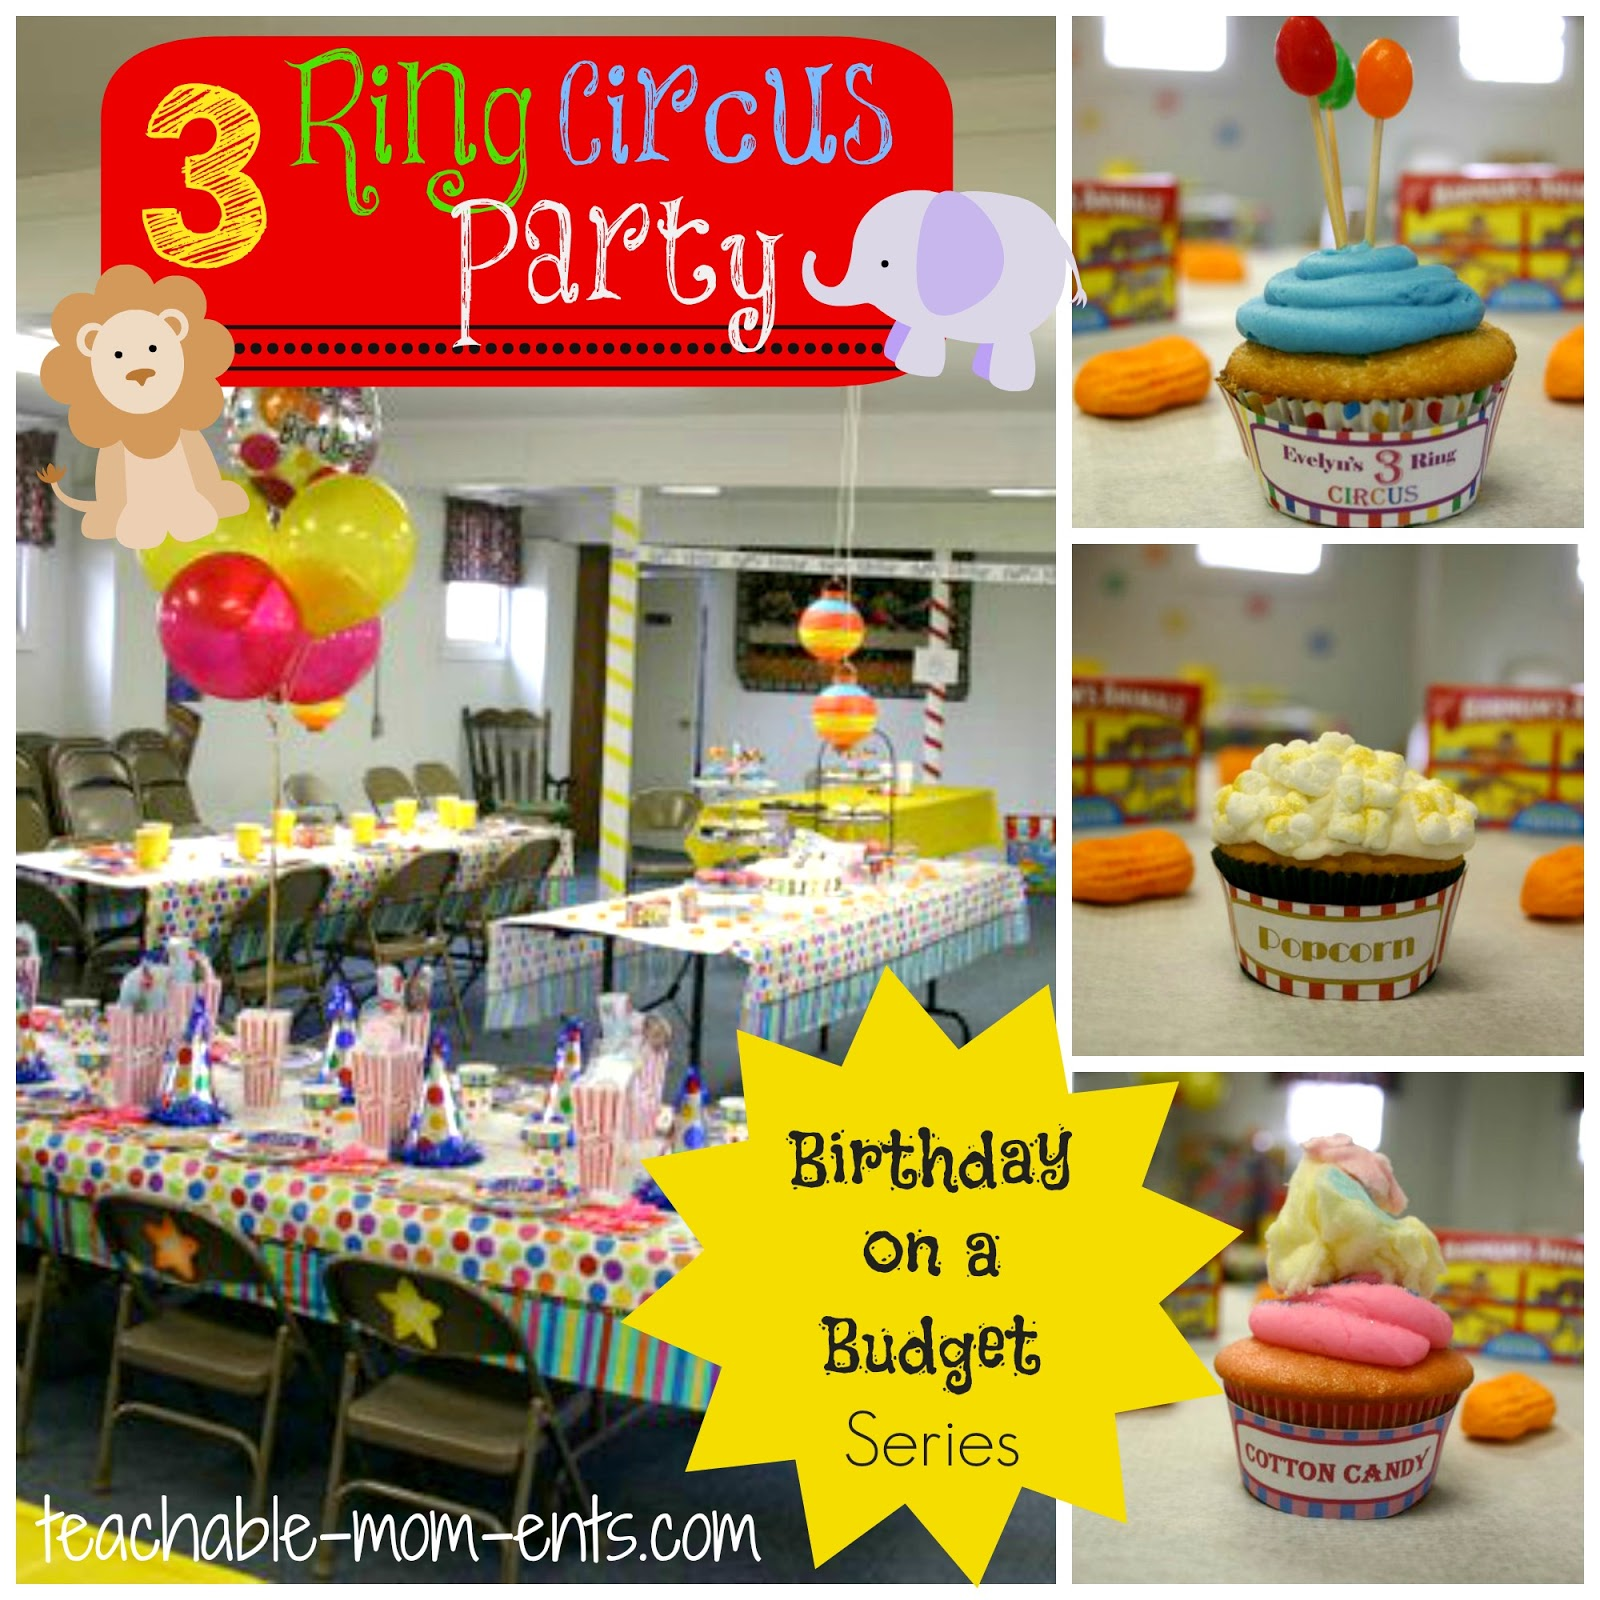 Birthday On A Budget: 3 Ring Circus Party